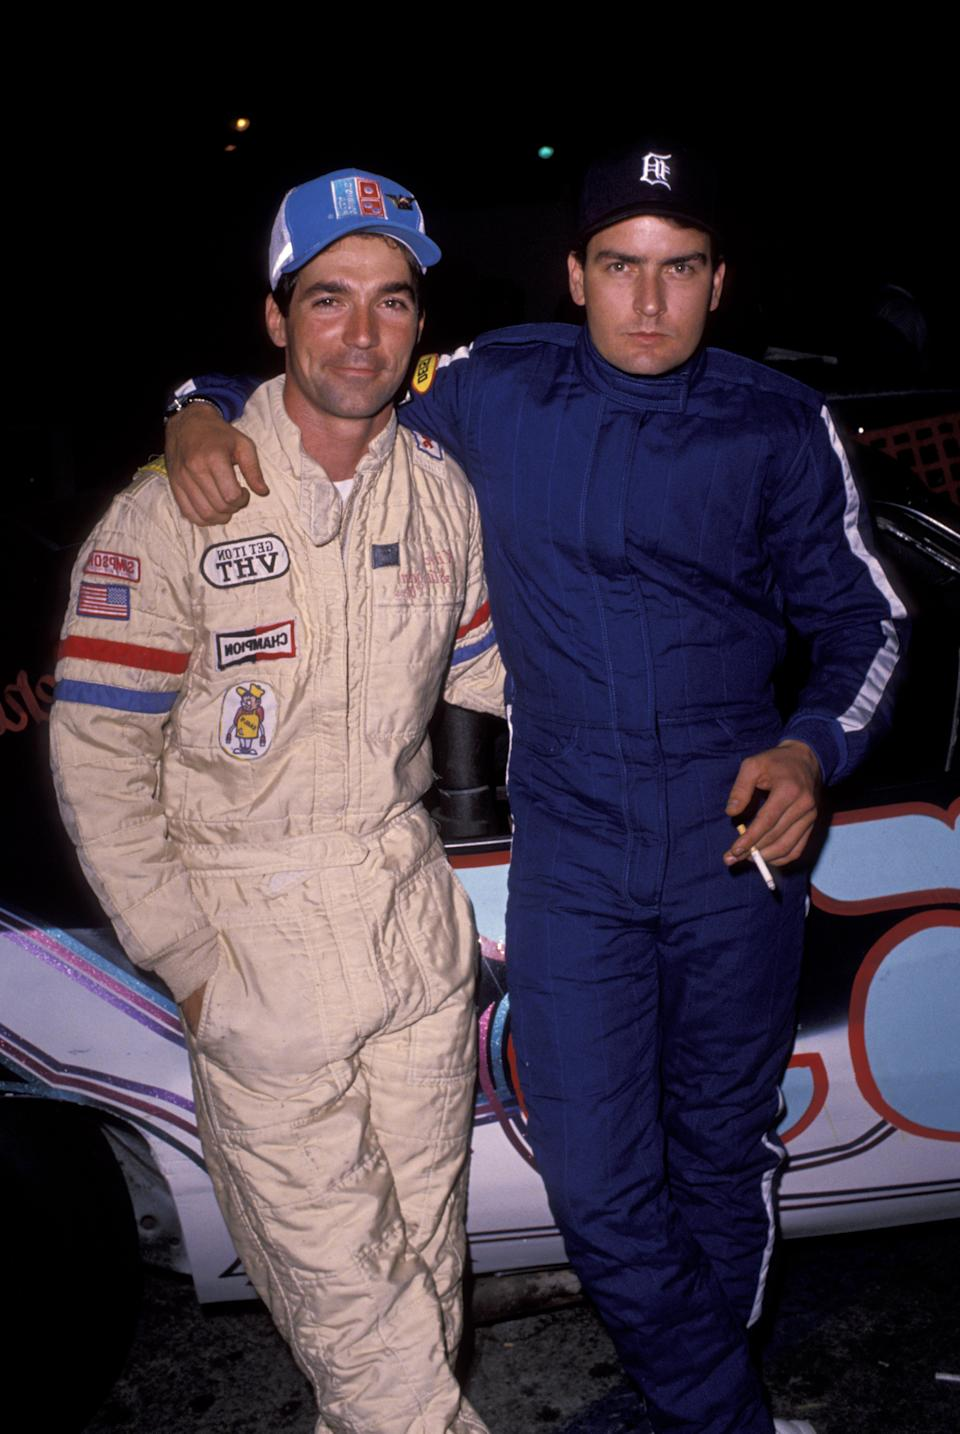 Eddie Braun and Charlie Sheen (Photo by Ron Galella/Ron Galella Collection via Getty Images)